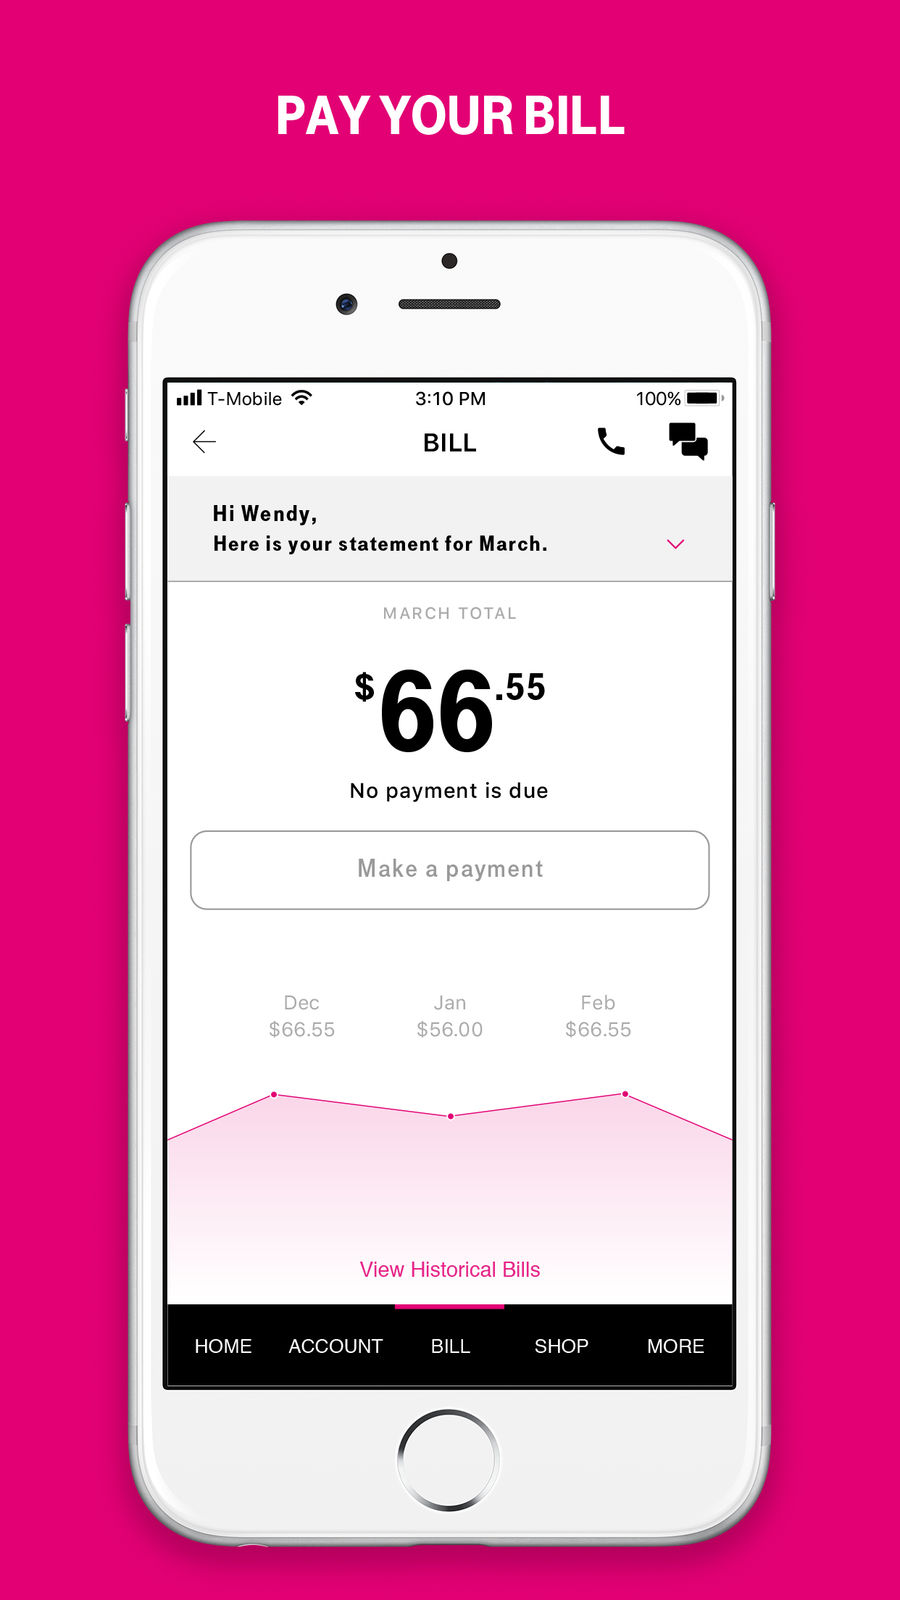 Example of Design for Utilities App , App Store Screenshot by T-Mobile